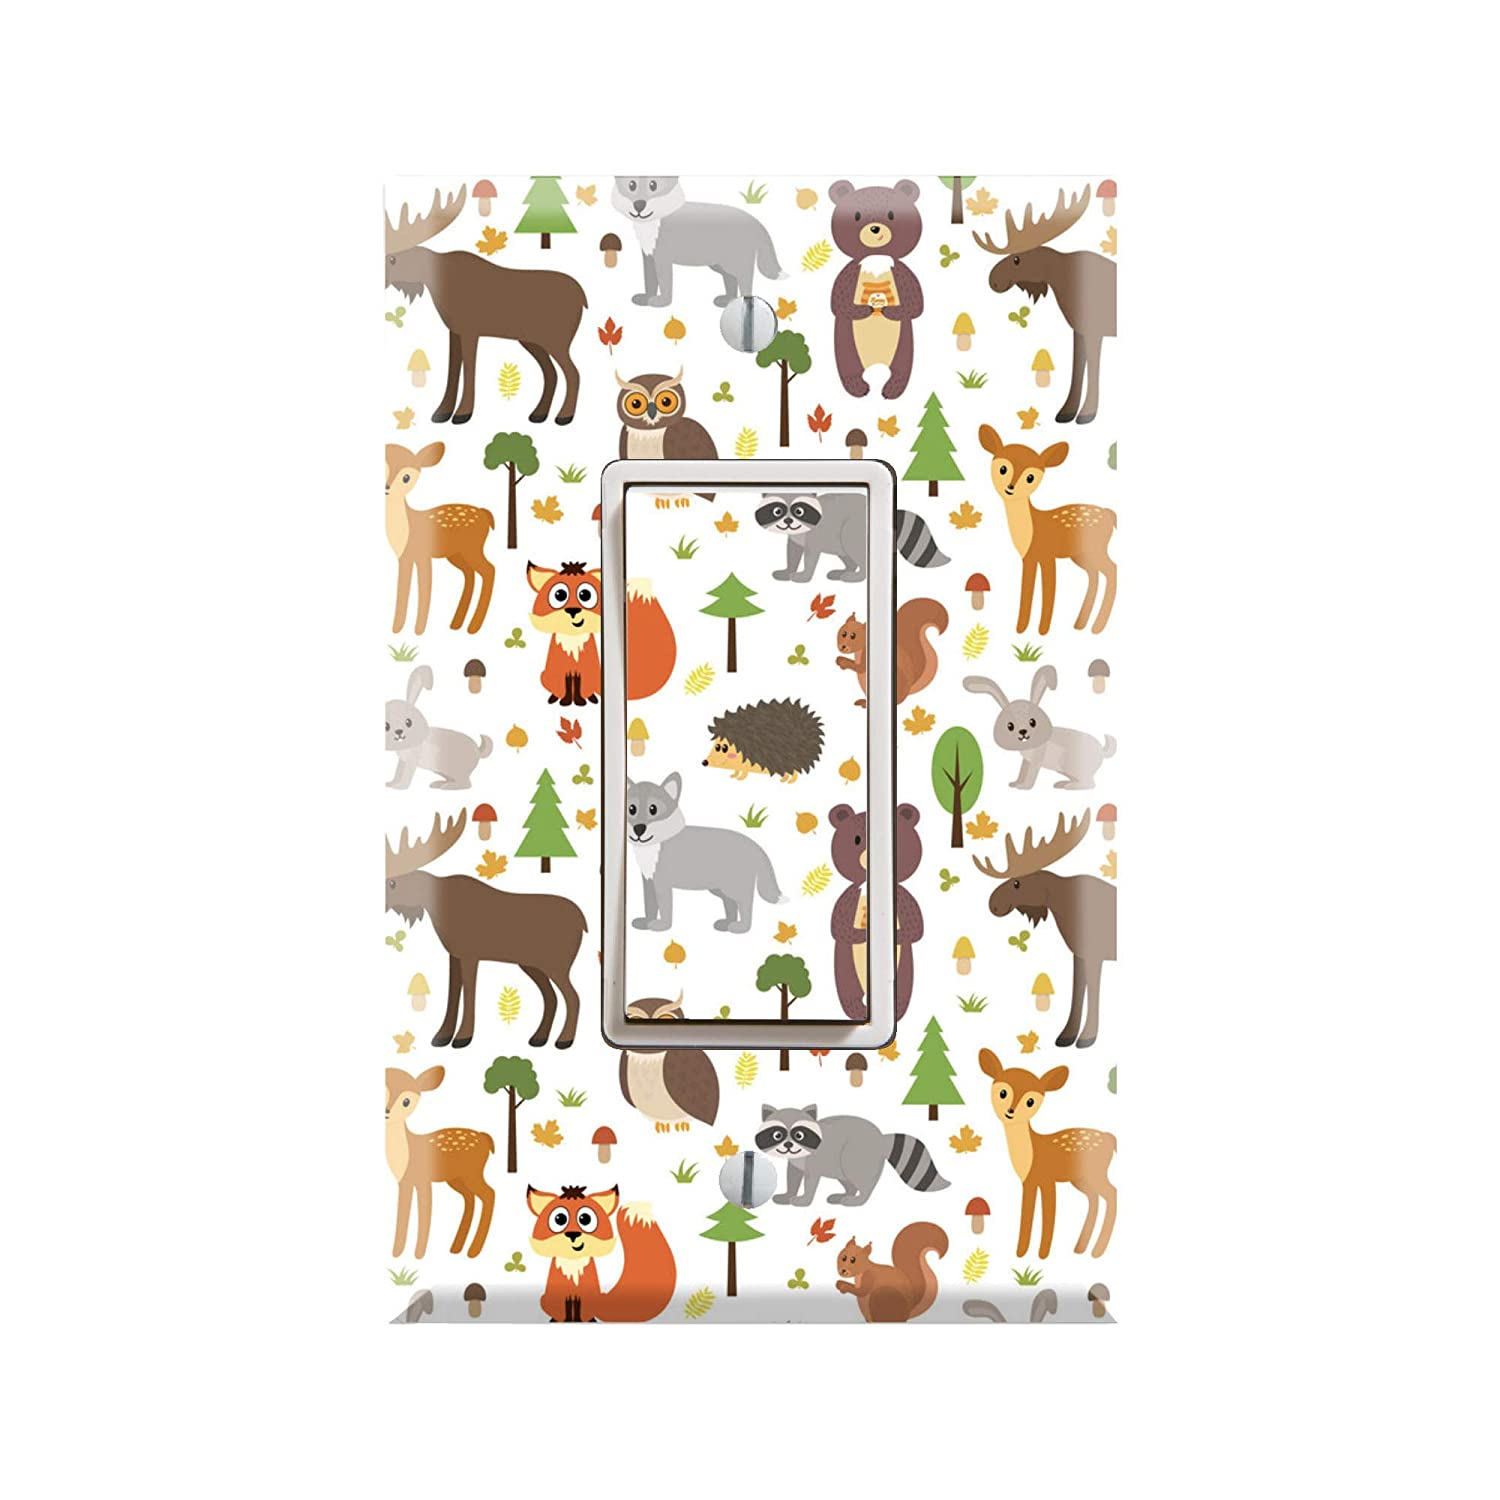 Amazon Com Forest Animals Light Switch Cover Animals Graphics Wallplate Outlet Cover Single Toggle Single Rocker Outlet Cover Gift For Animal Lover Animals Kids Room Animal Themed Kids Nursery Room Tf83 Handmade